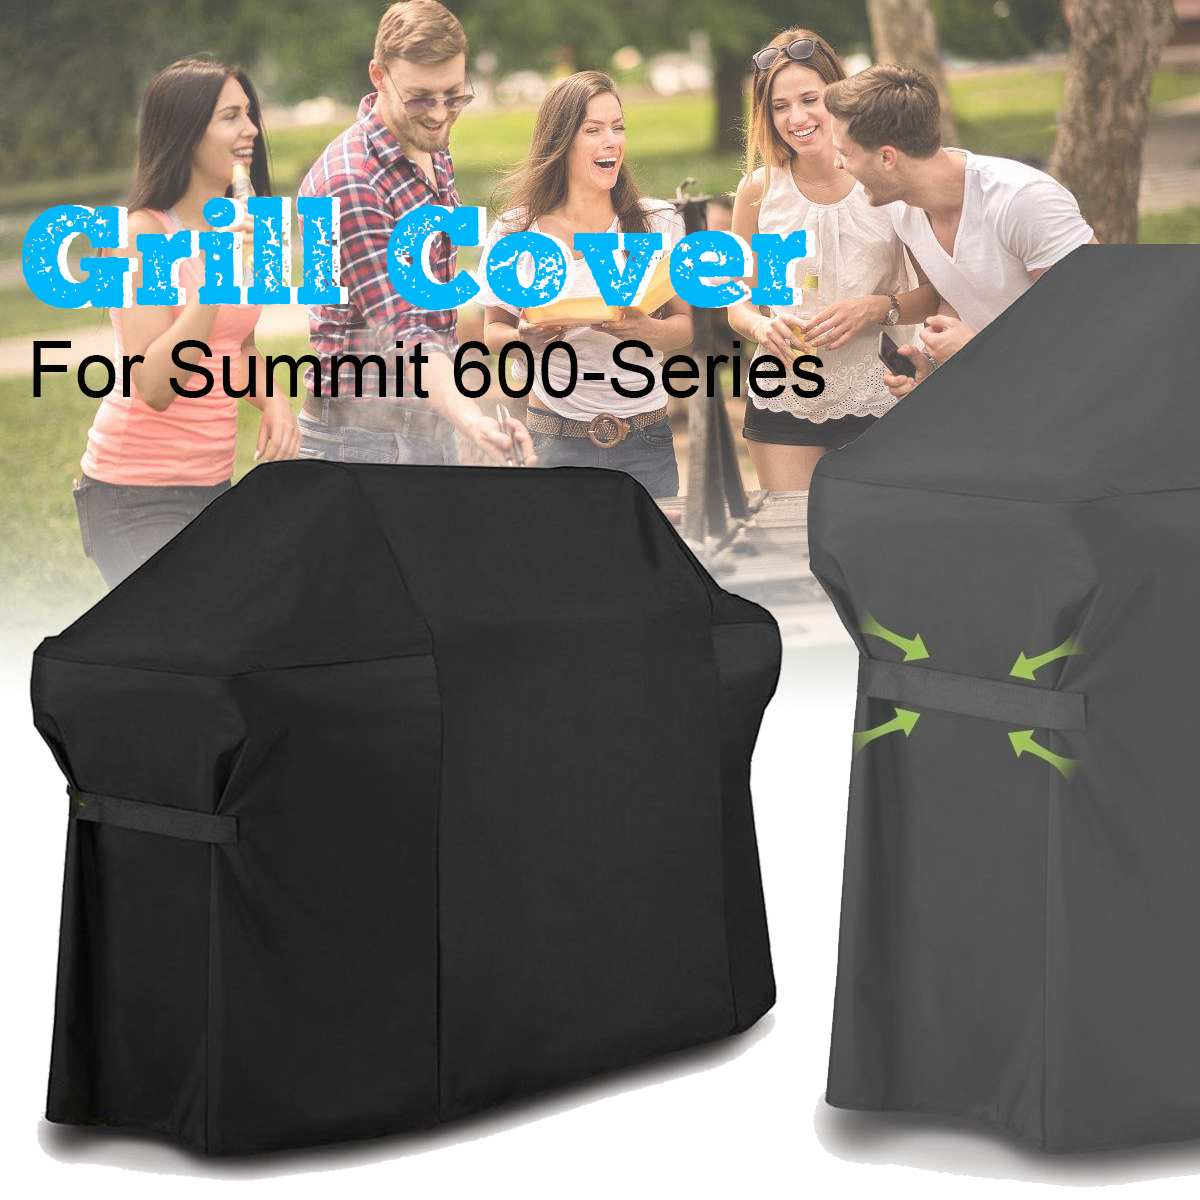 Waterproof BBQ Grill Cover for Summit 600-Series Portable Outdoor BBQ Accessories Anti Dust Rain Protector for Kitchen Grill NEWWaterproof BBQ Grill Cover for Summit 600-Series Portable Outdoor BBQ Accessories Anti Dust Rain Protector for Kitchen Grill NEW